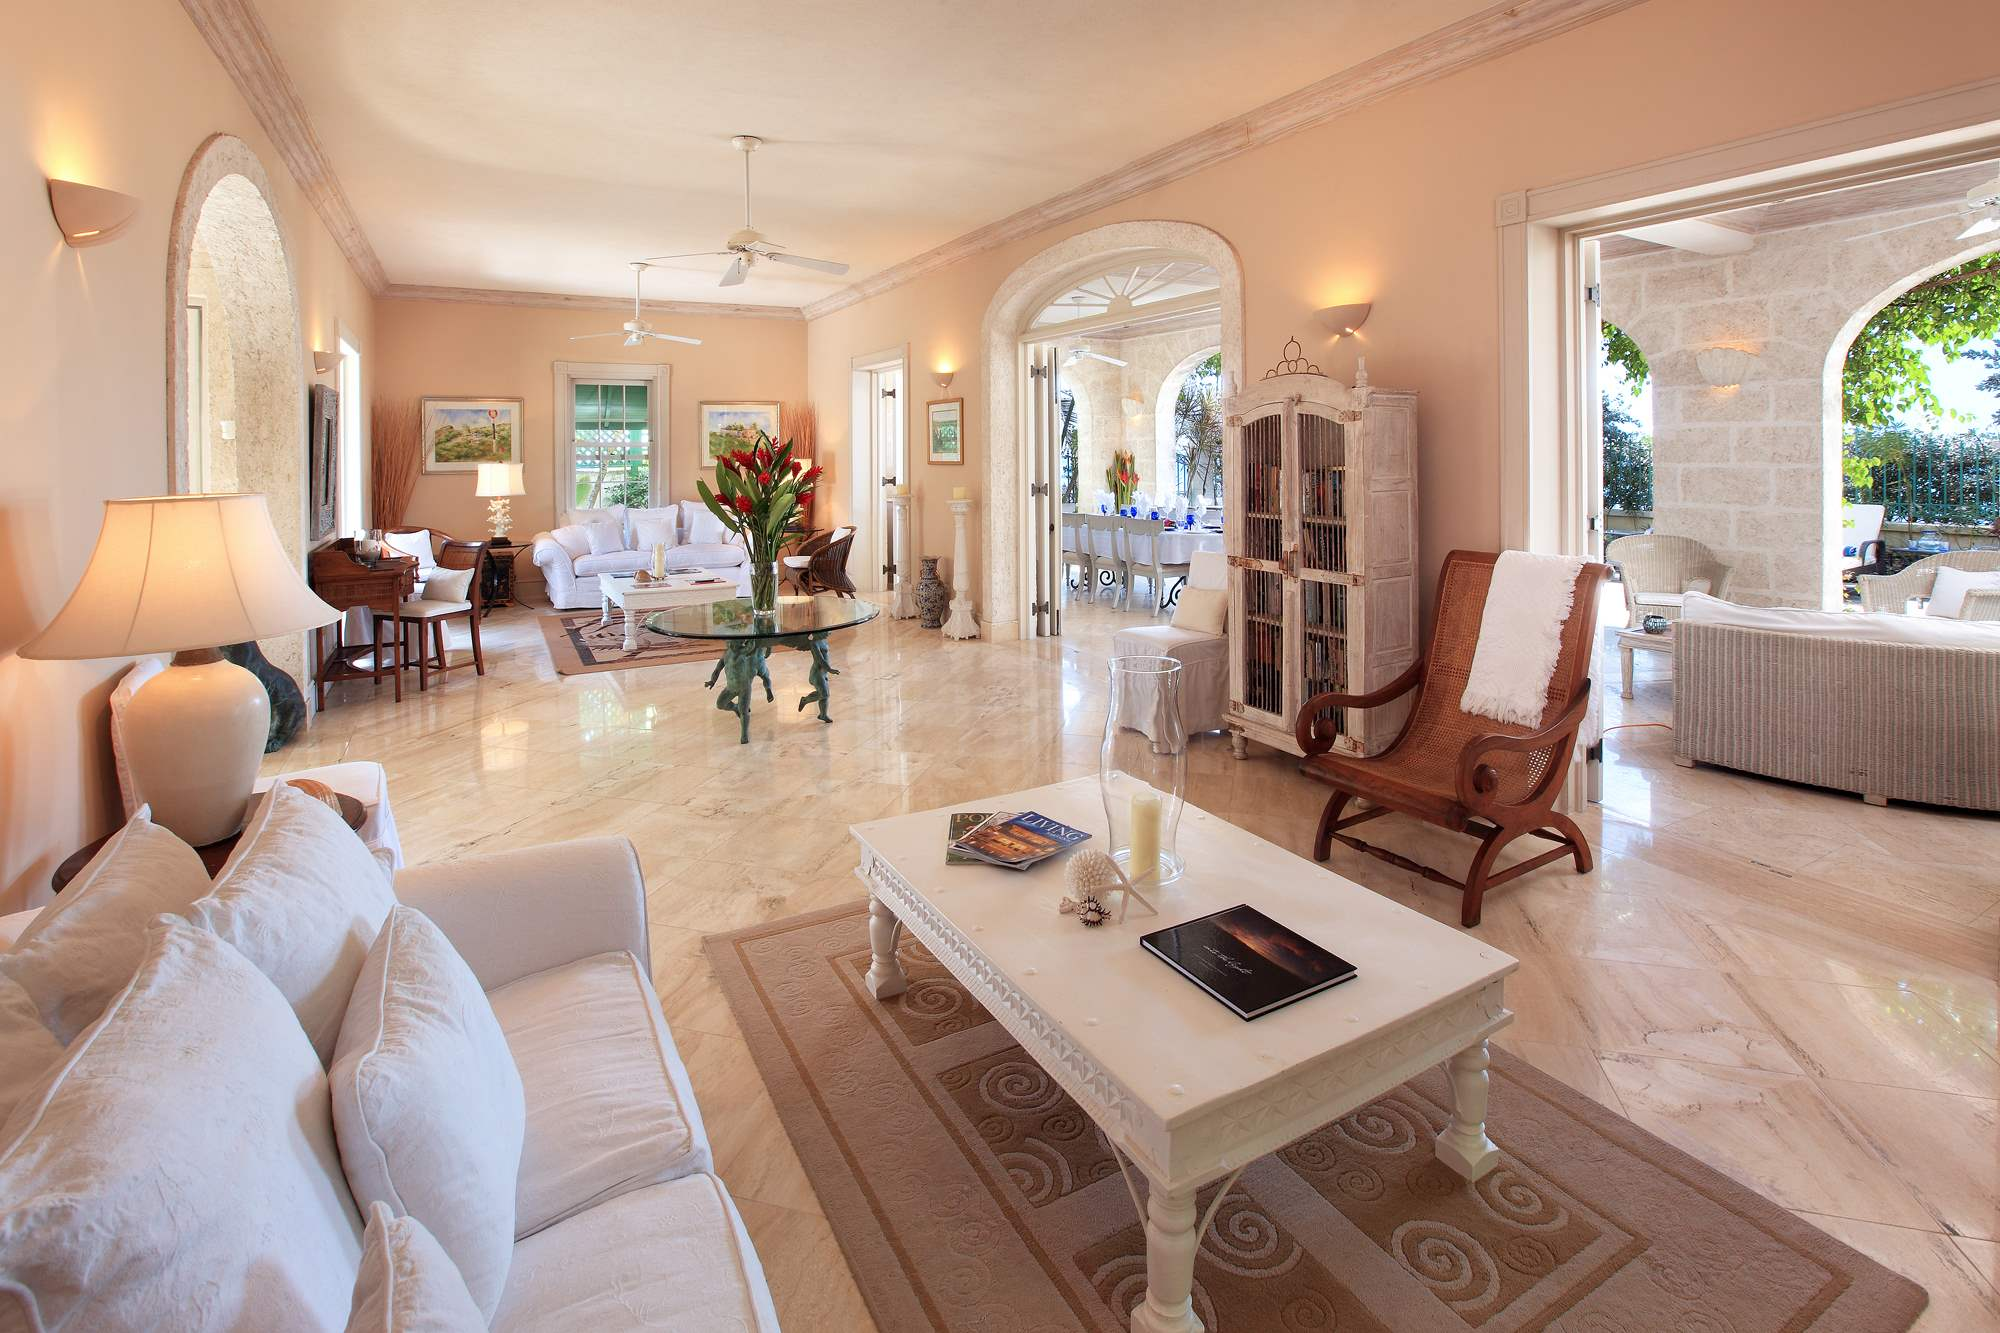 Caprice, 4 bedroom villa in St. James & West Coast, Barbados Photo #3